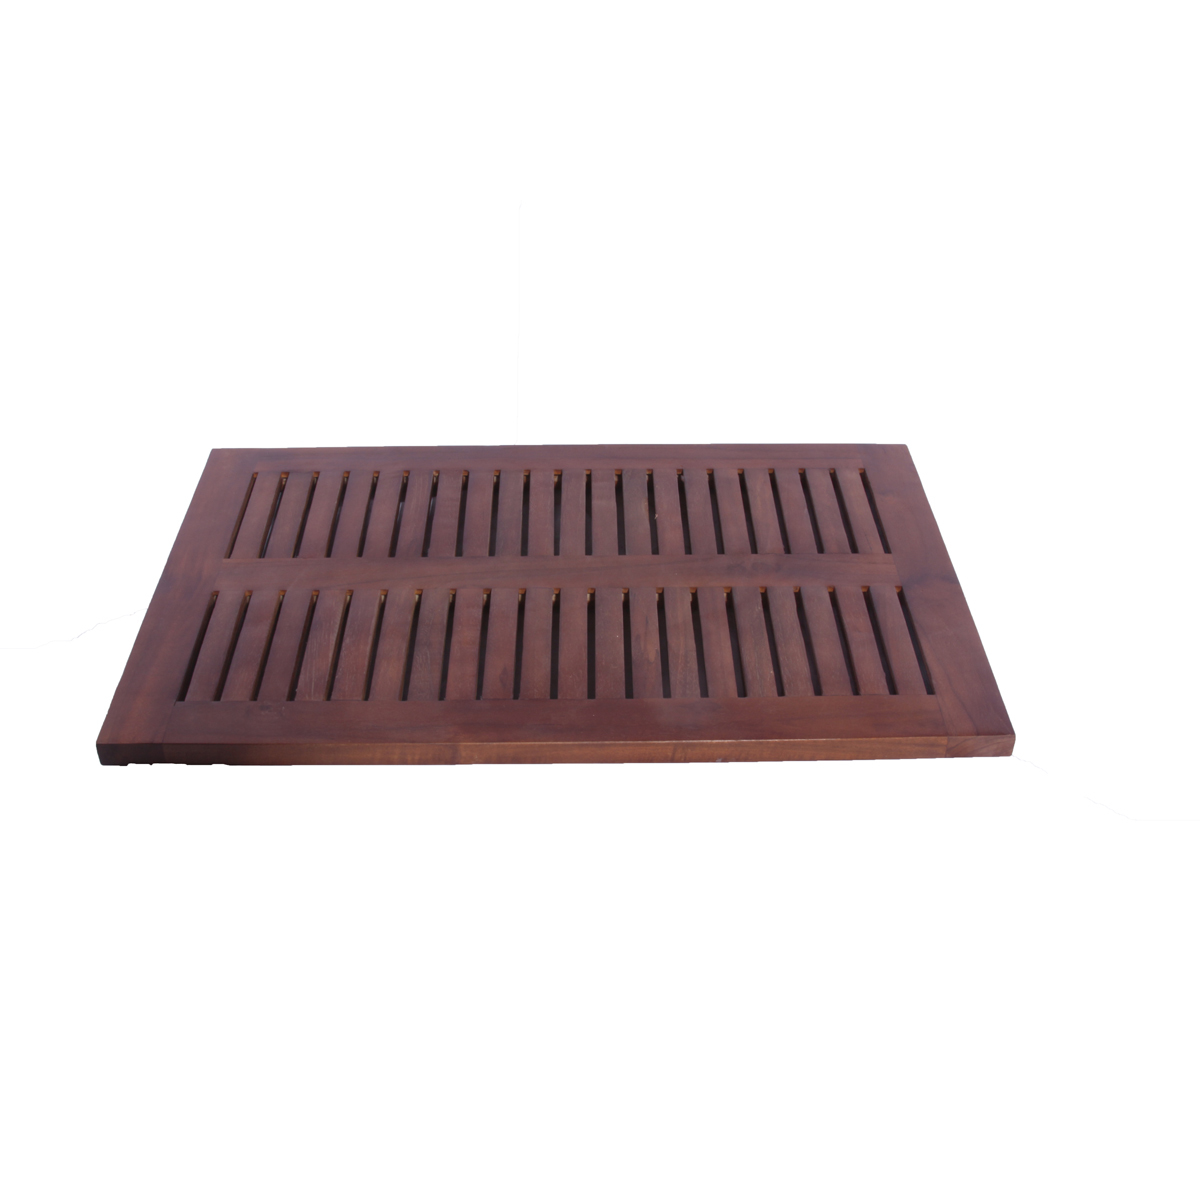 "Decoteak DT133 23"" x 15"" Teak Shower Bath Floor Mat"